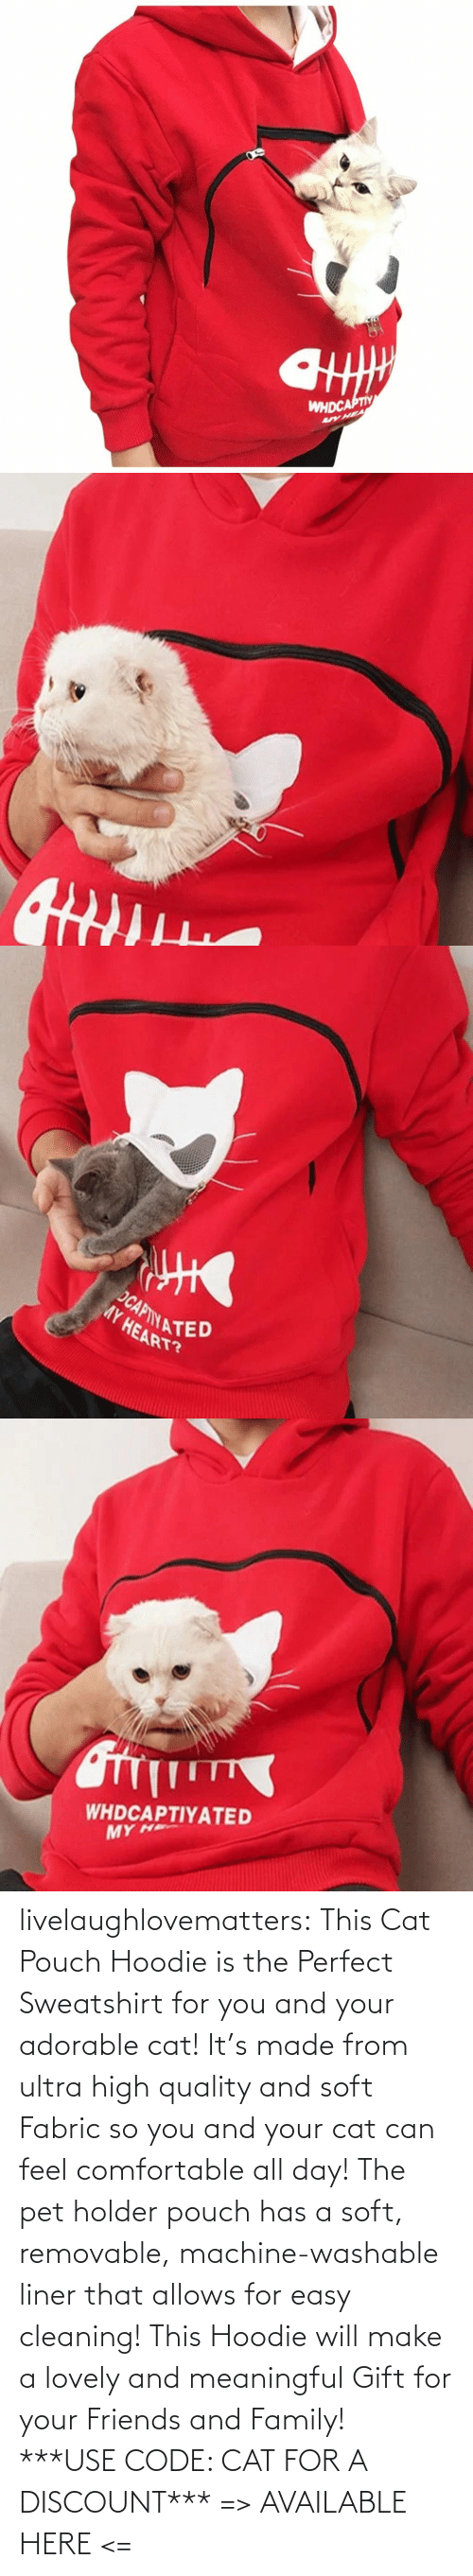 day: livelaughlovematters: This Cat Pouch Hoodie is the Perfect Sweatshirt for you and your adorable cat! It's made from ultra high quality and soft Fabric so you and your cat can feel comfortable all day! The pet holder pouch has a soft, removable, machine-washable liner that allows for easy cleaning! This Hoodie will make a lovely and meaningful Gift for your Friends and Family!  ***USE CODE: CAT FOR A DISCOUNT*** => AVAILABLE HERE <=